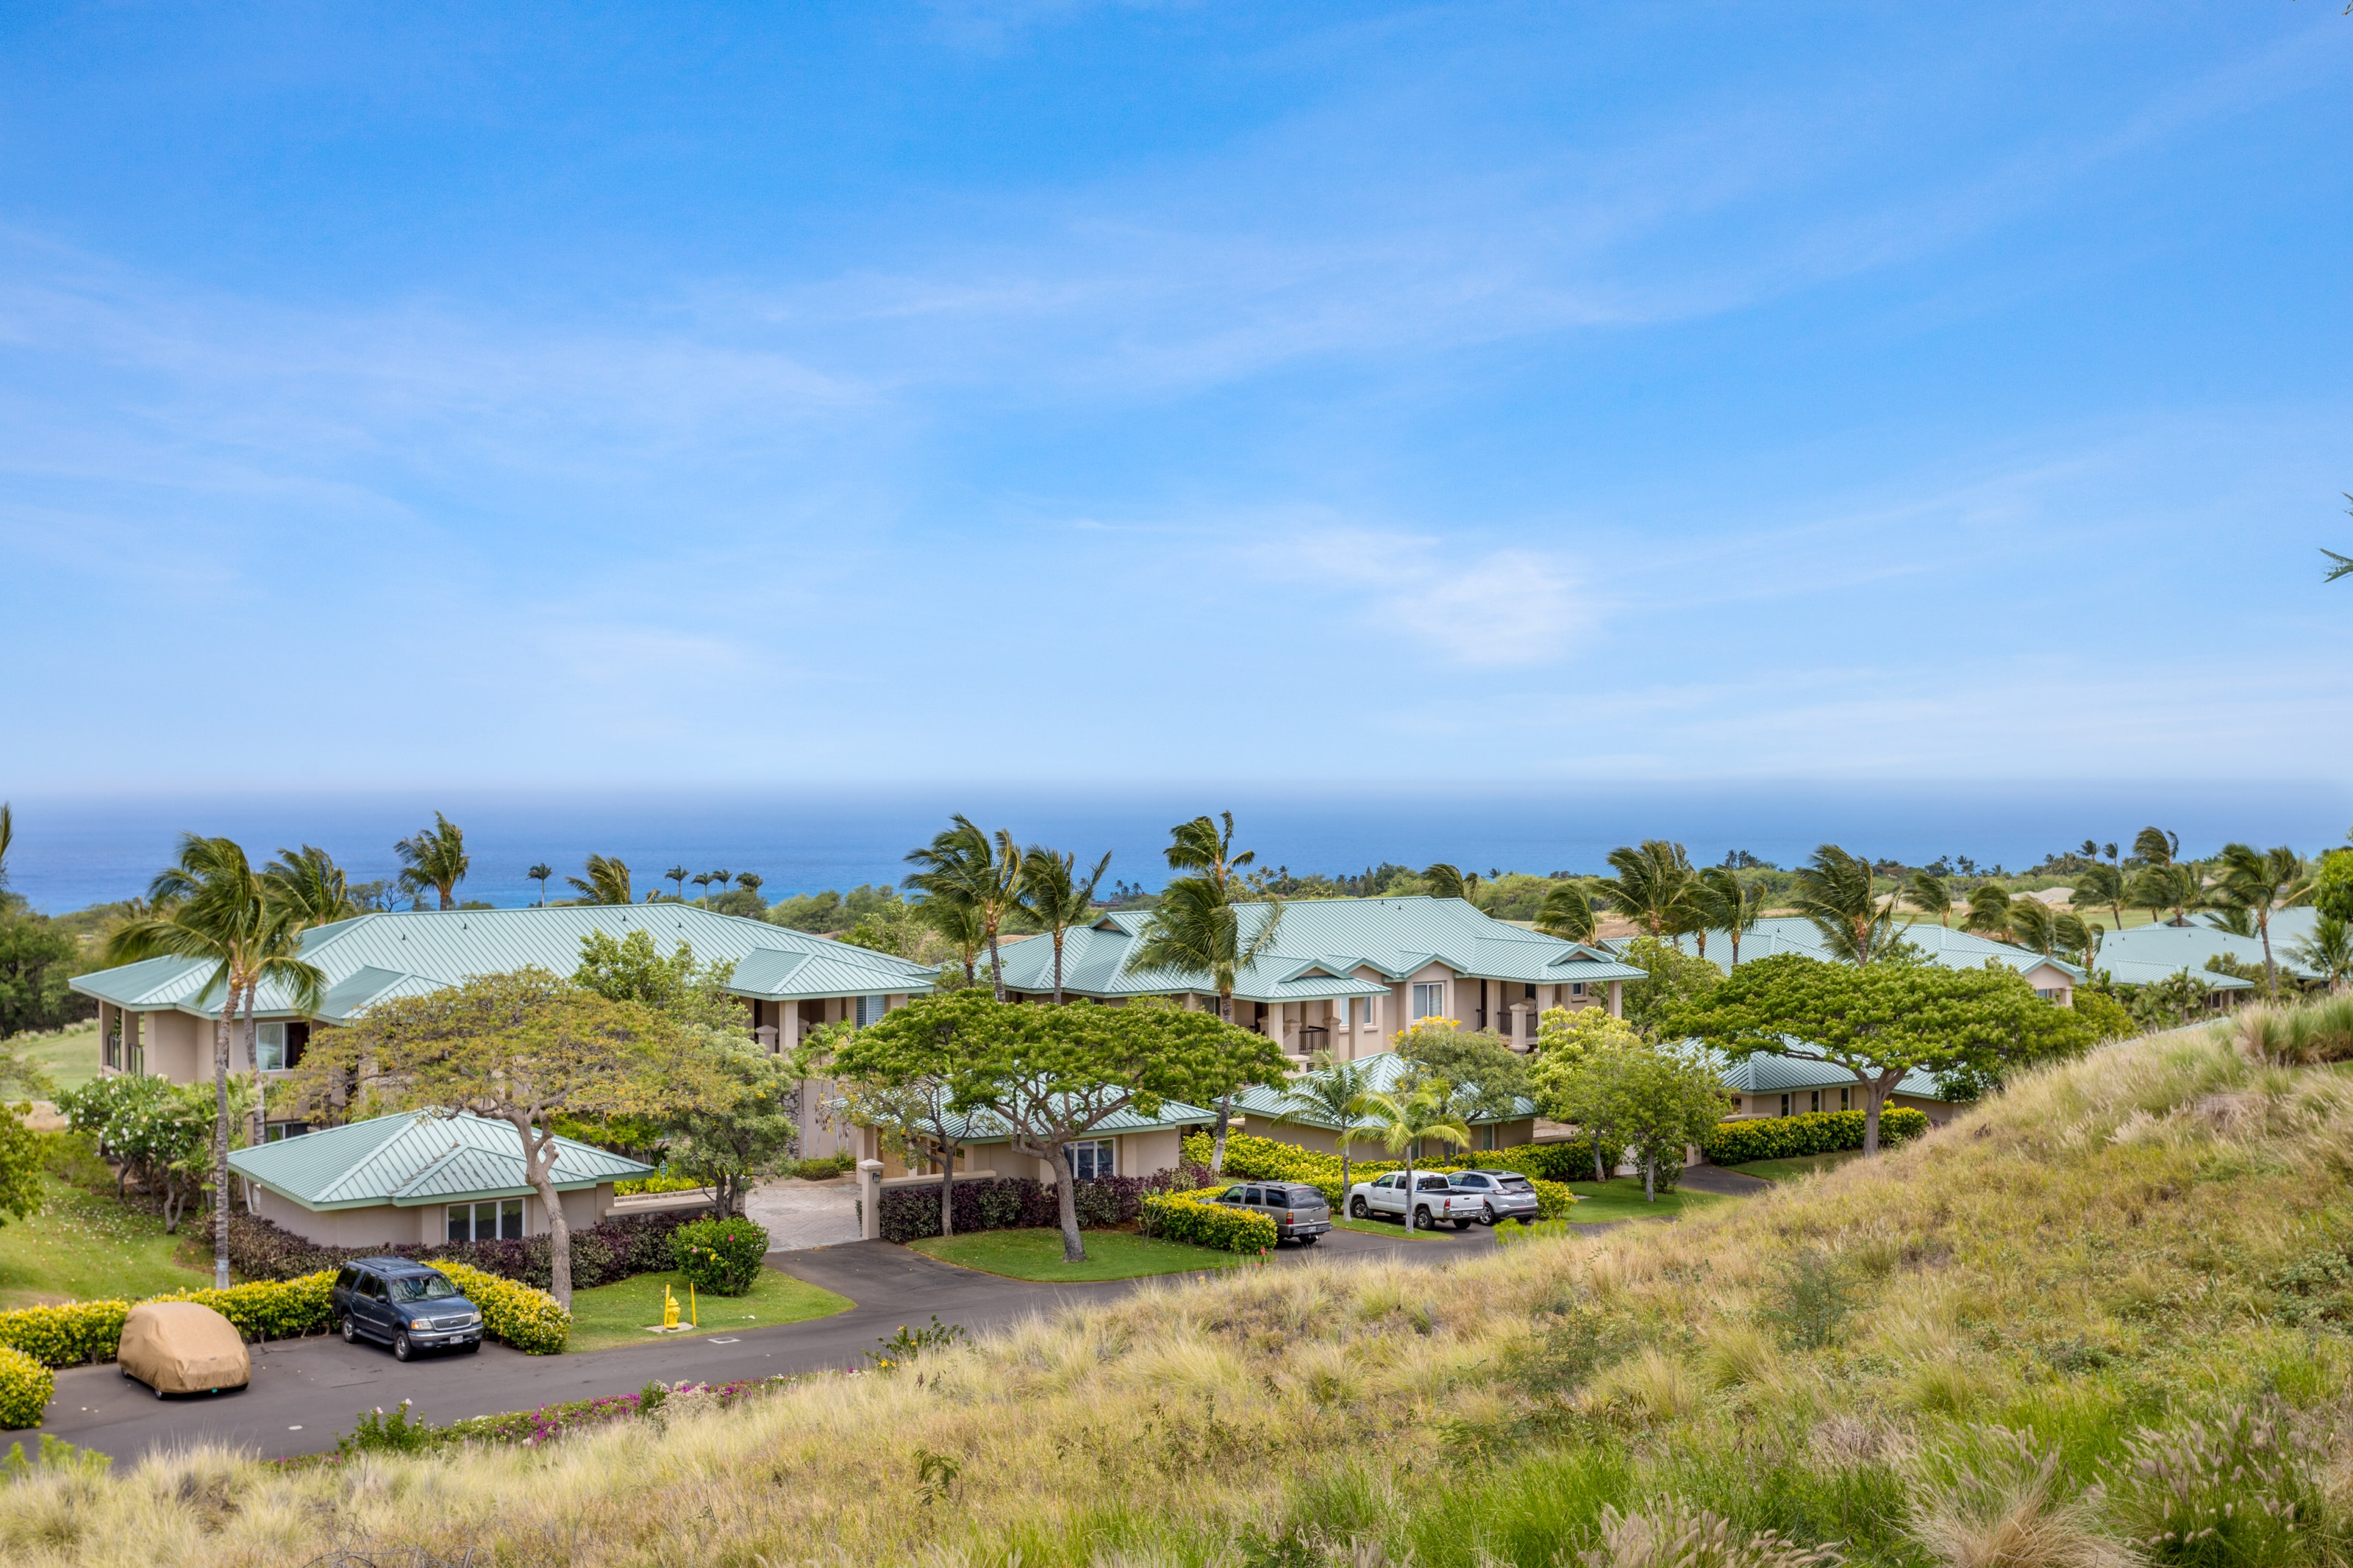 Lovely Oceanview Home in Uplands, Moments from Beaches, Pools & Amenities